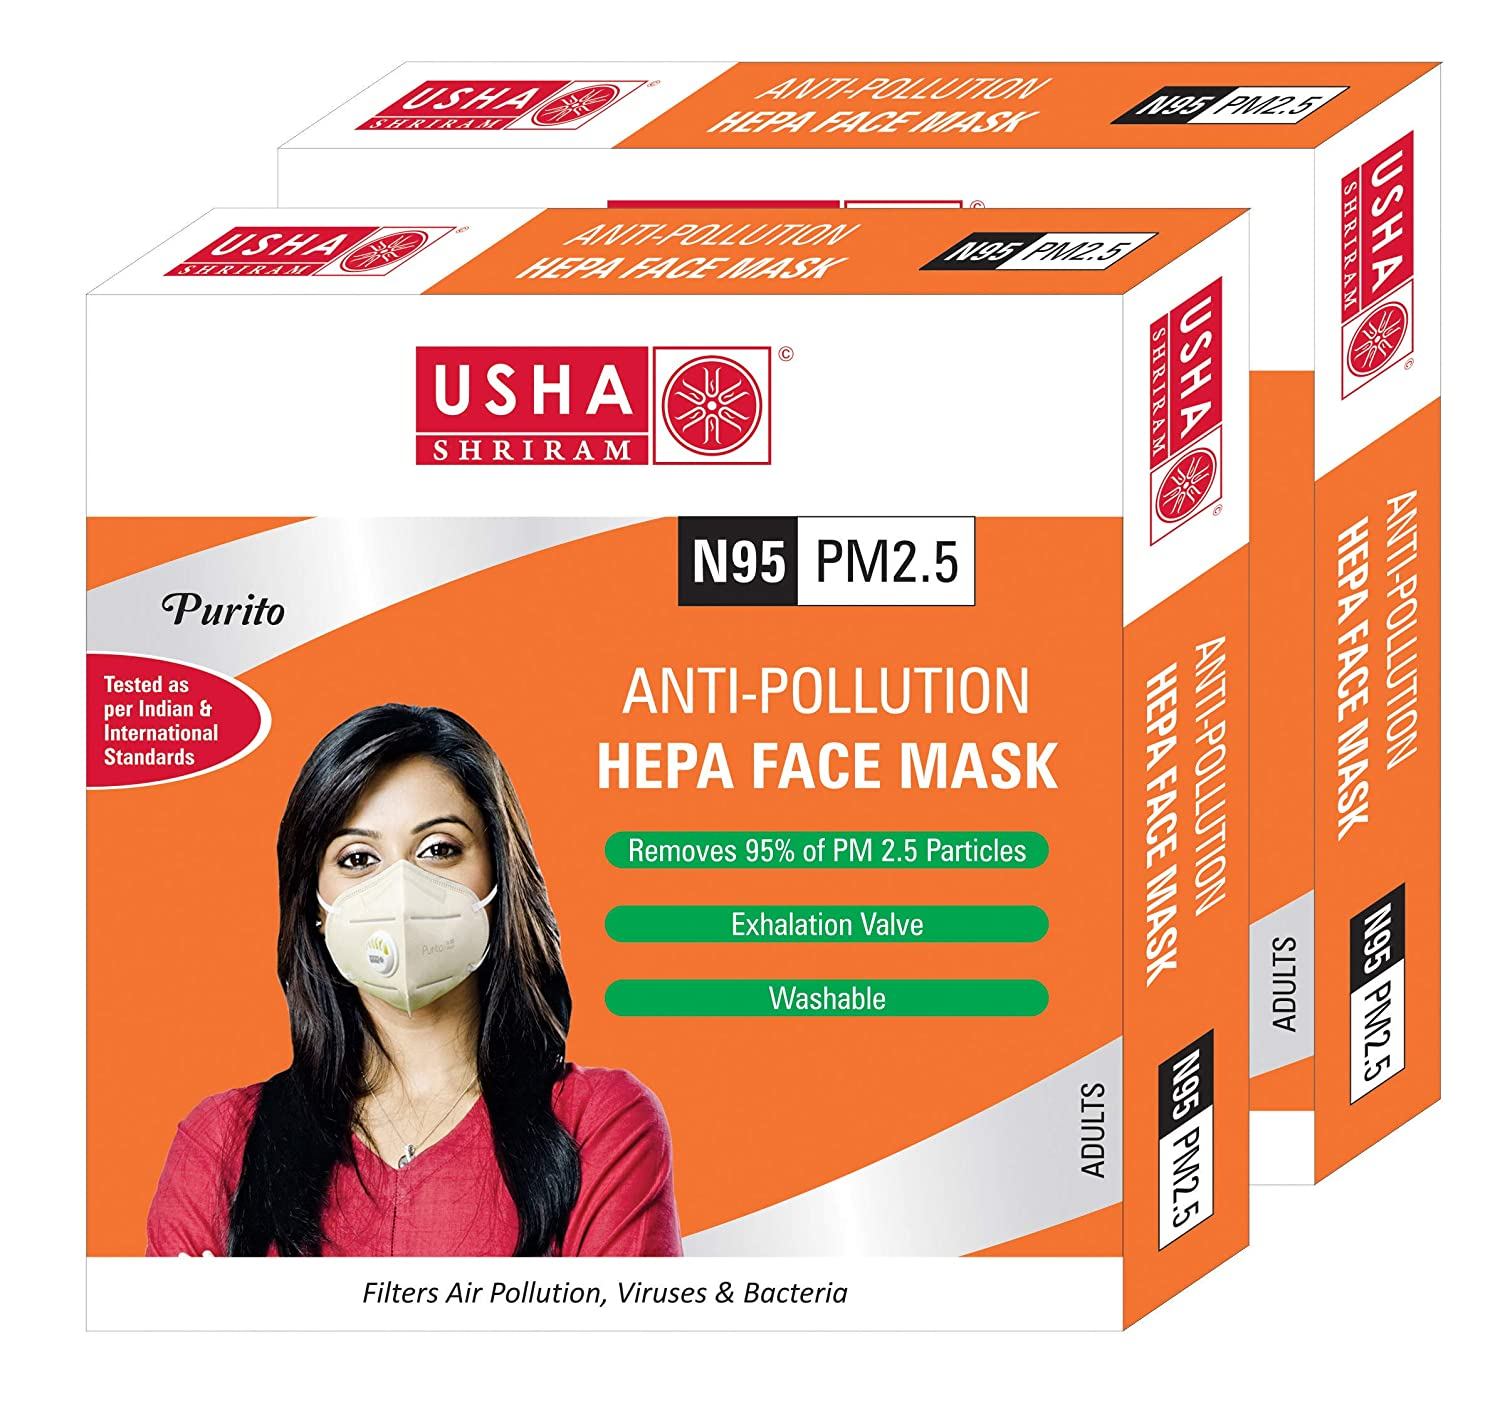 Usha Shriram Purito N95 PM2.5 HEPA Anti Pollution Face Mask - USHA SHRIRAM  - Pack of 2